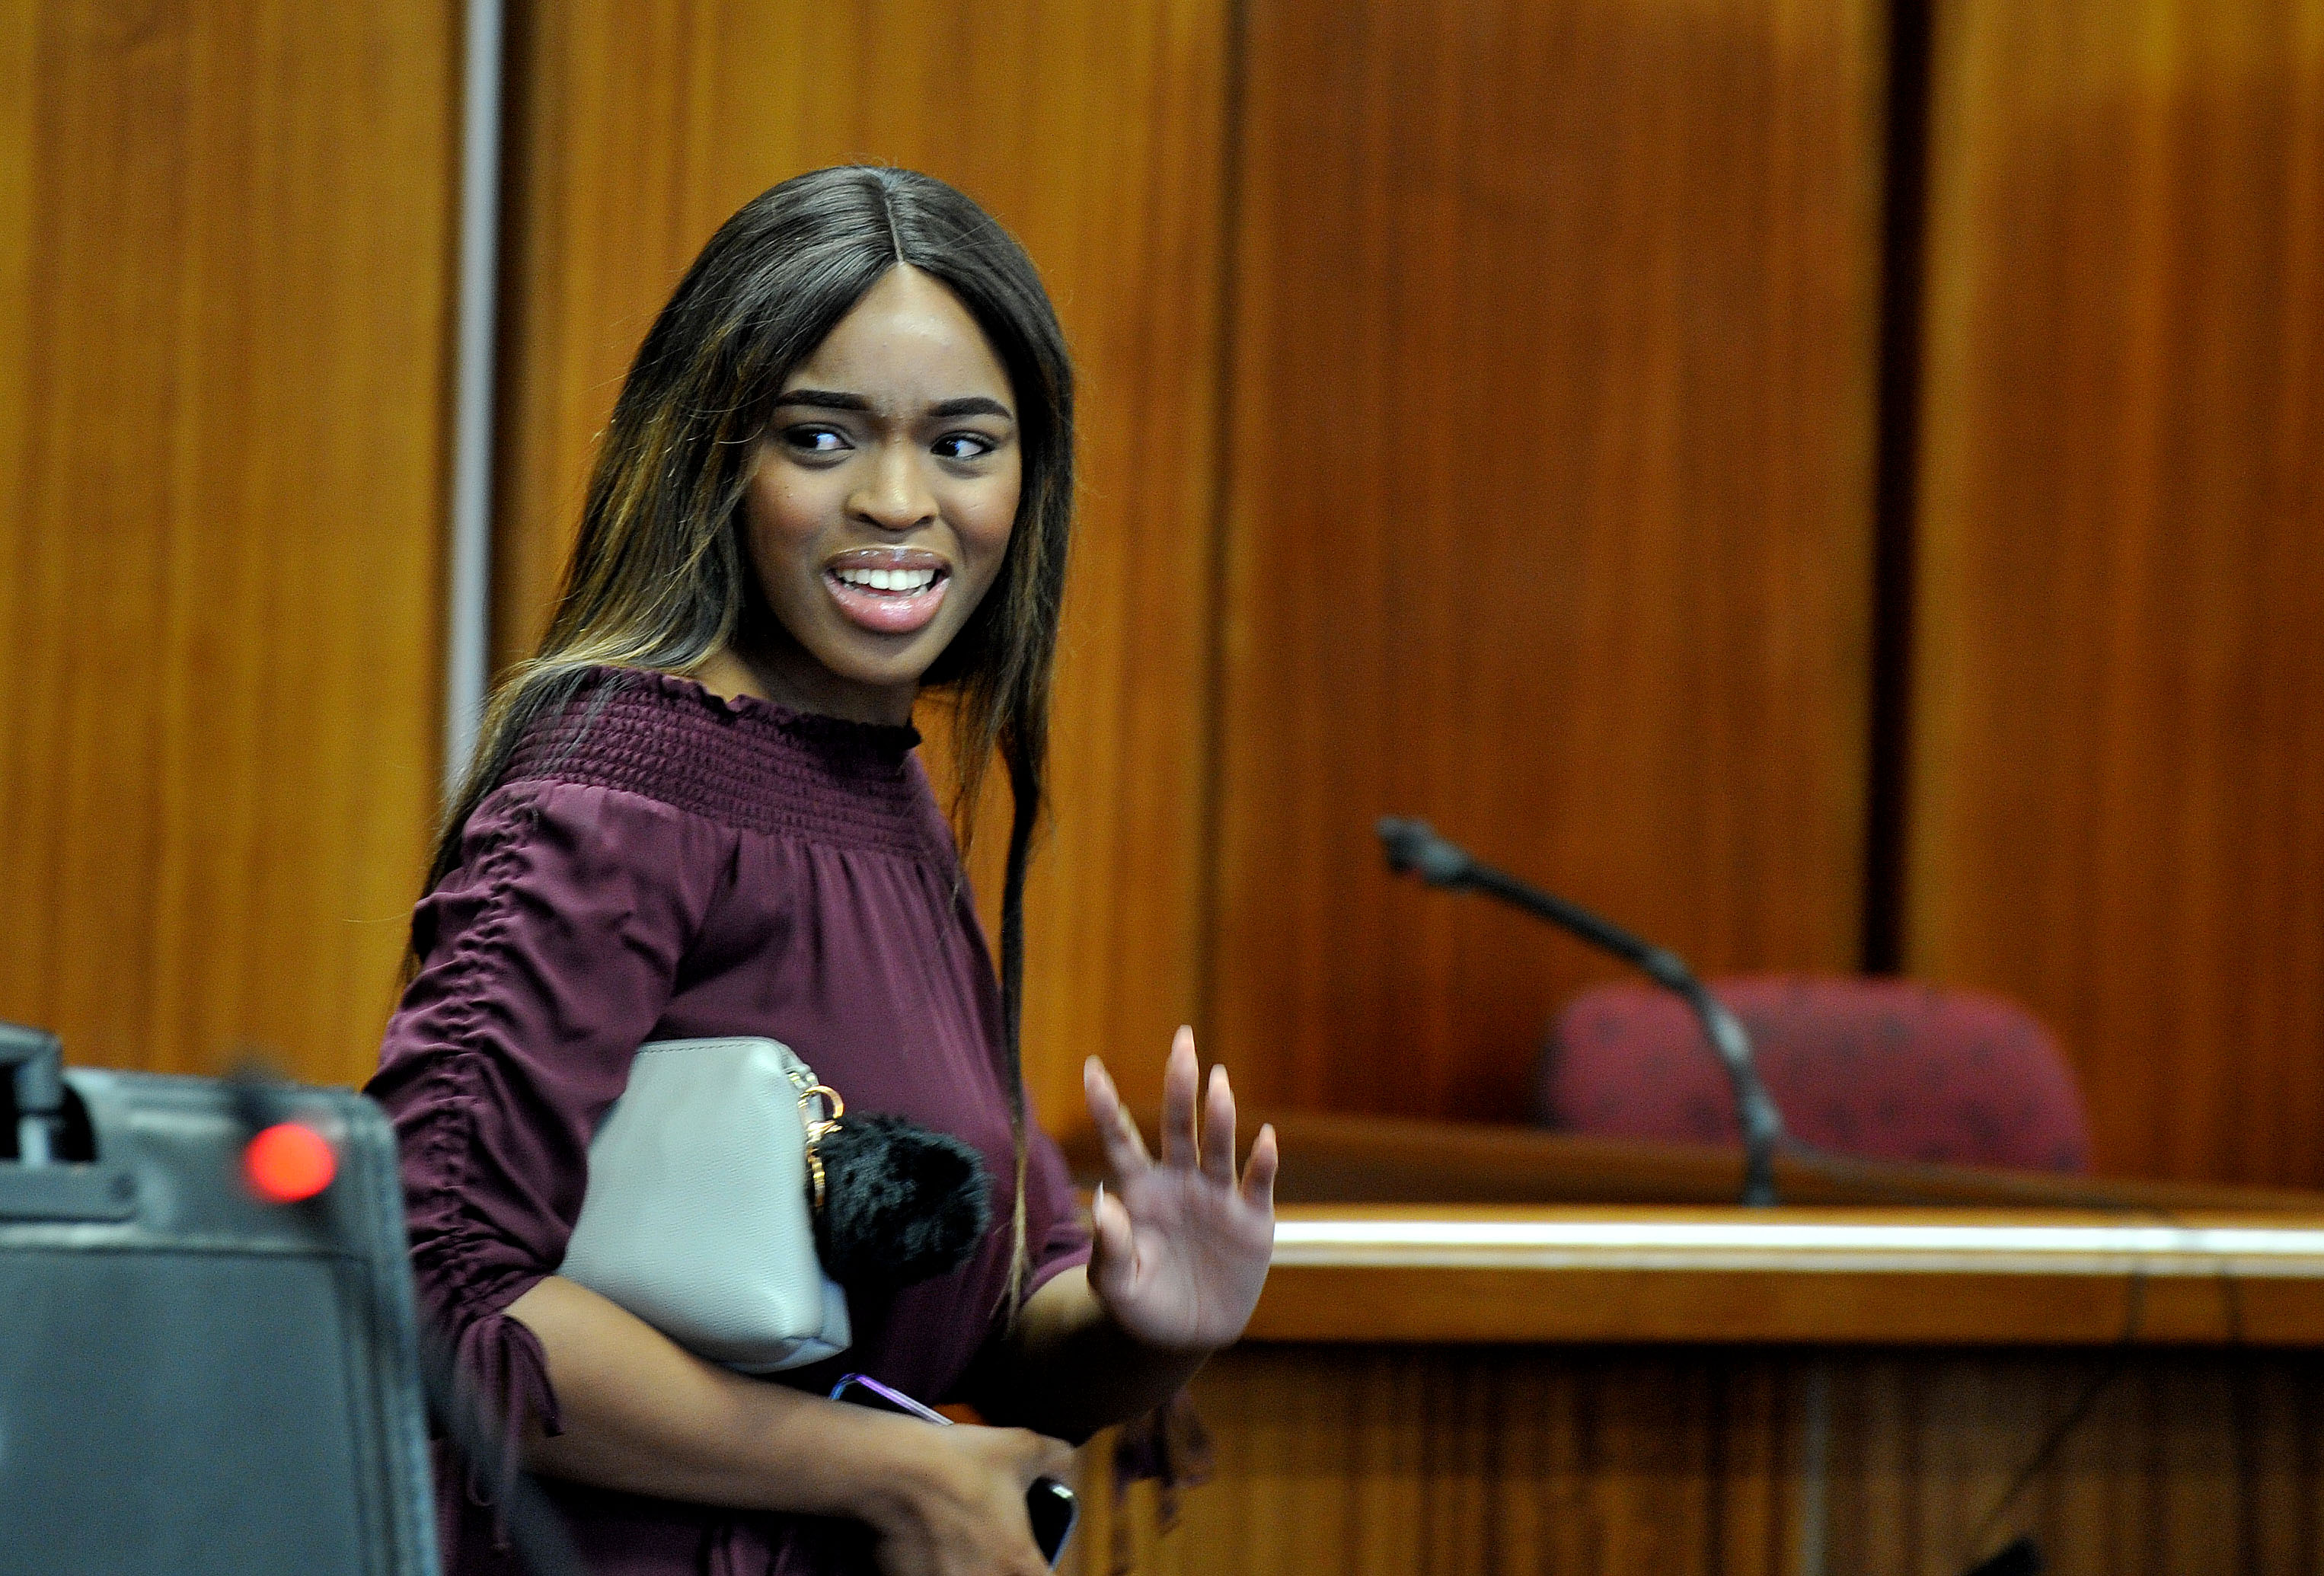 State witness Cheryl Zondi, 22, is cross-examined during the rape and human trafficking trial against controversial Nigerian pastor Timothy Omotoso at the Port Elizabeth High Court on October 16, 2018 in Nelson Mandela Bay, South Africa.